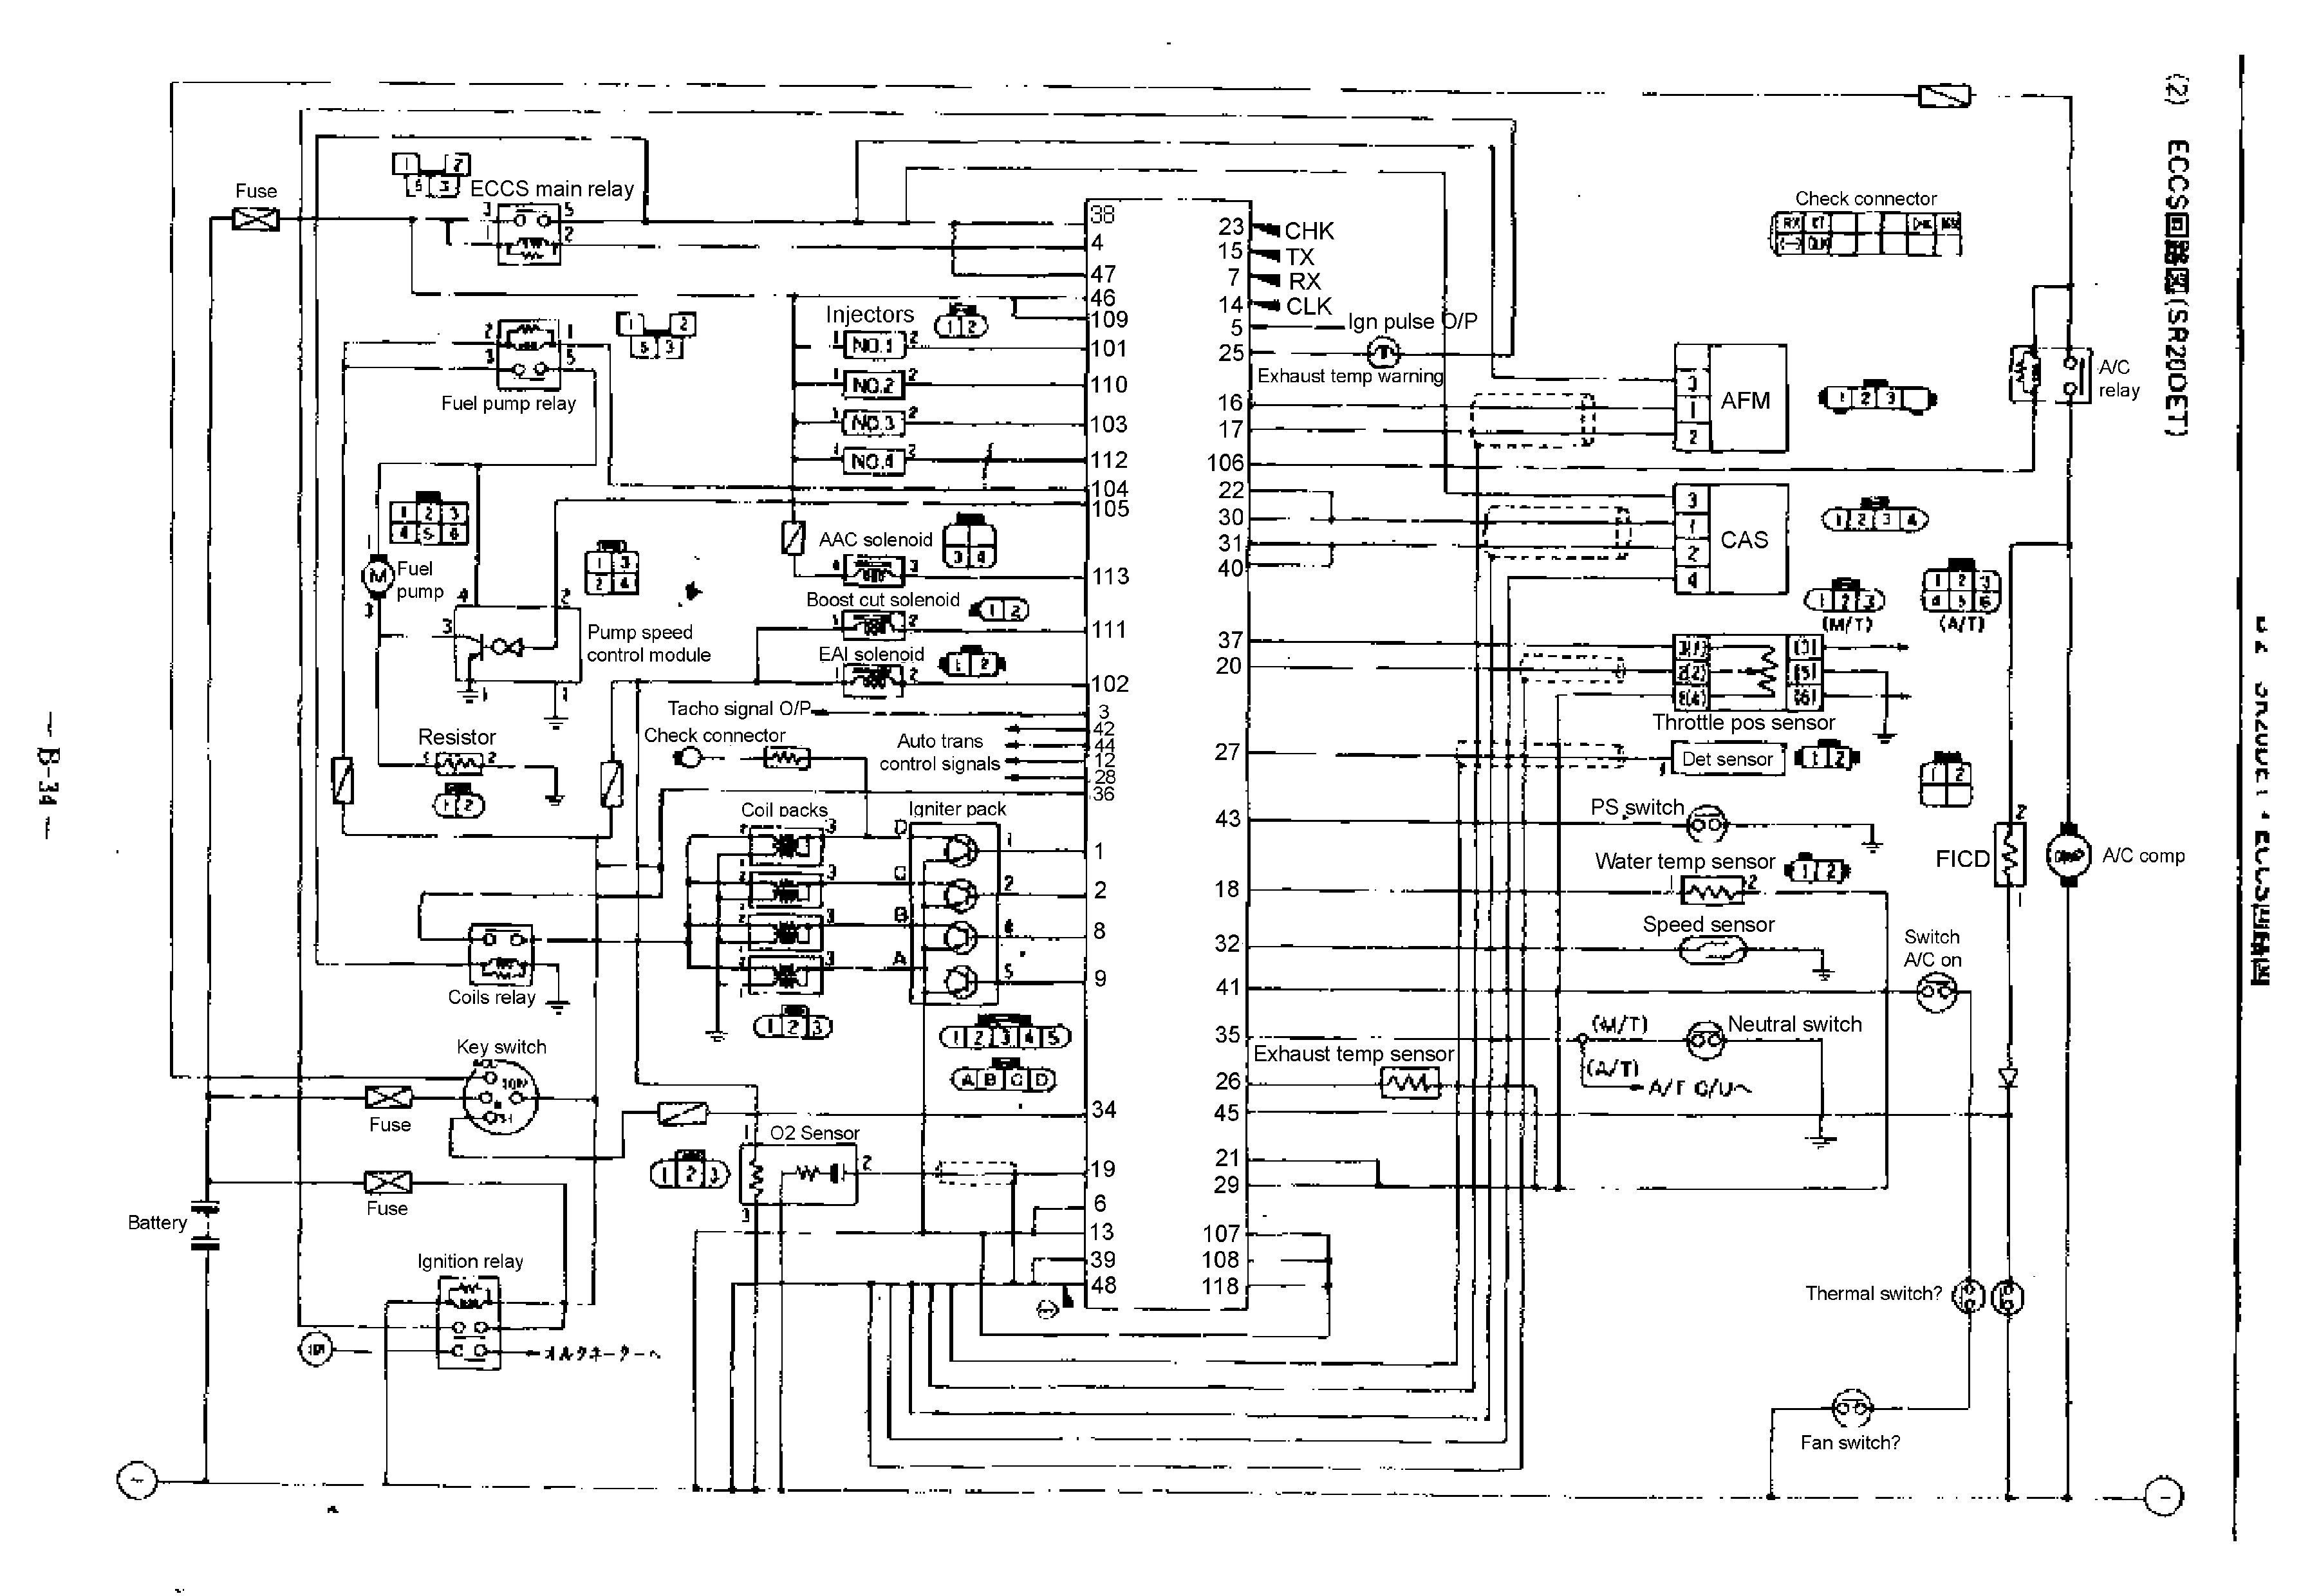 bluebird bus wiring diagram Collection-Wiring Harness Diagram Best Delighted Blue Bird Bus Wiring Diagrams Contemporary Electrical 15-c